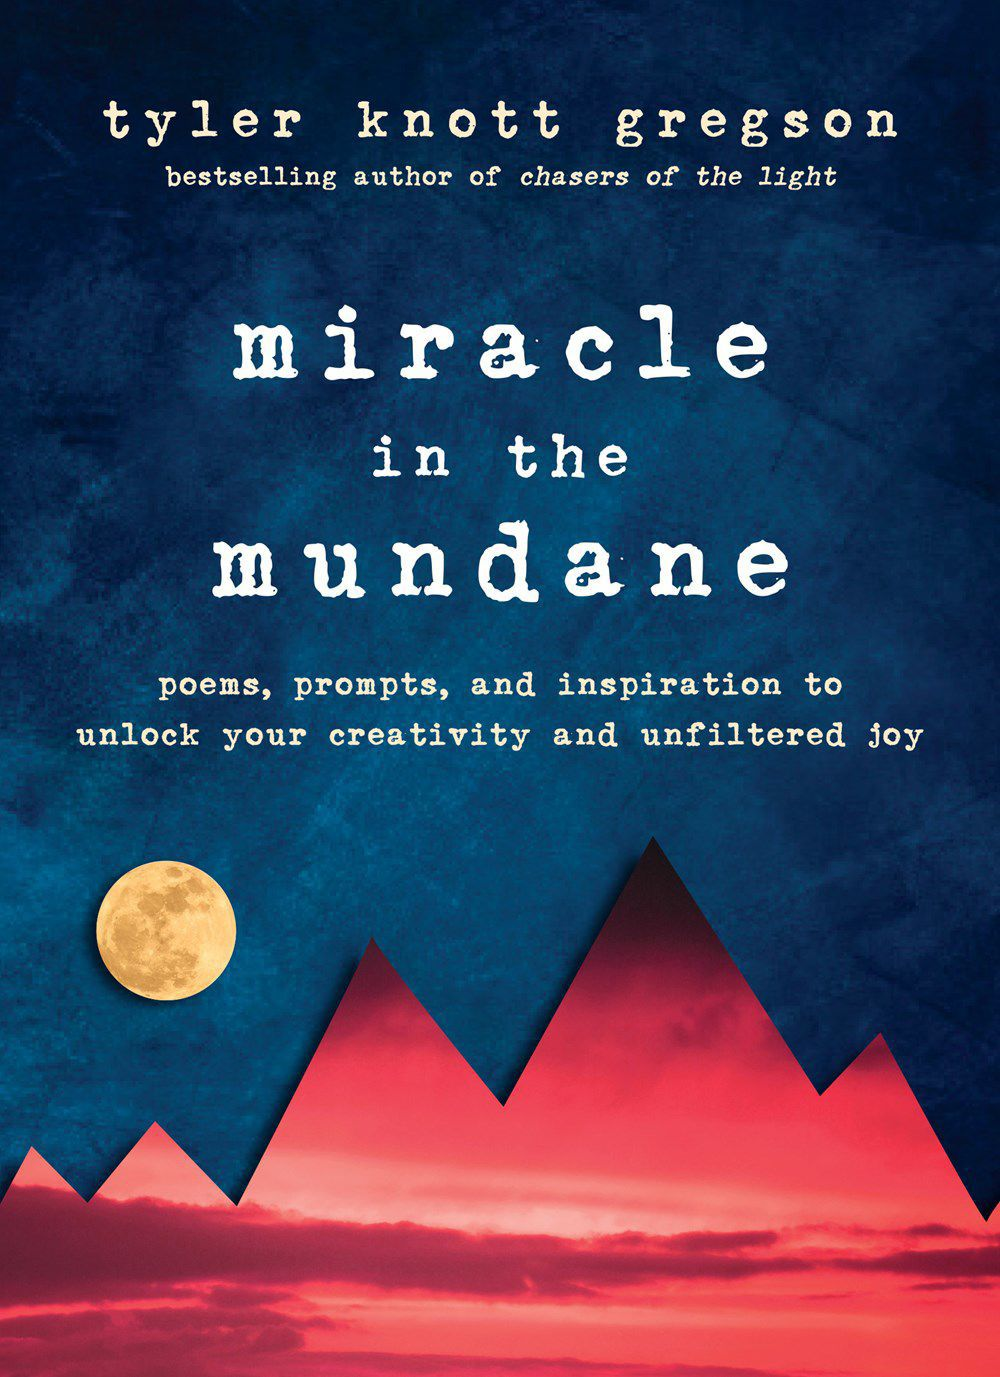 'Miracle in the Mundane'